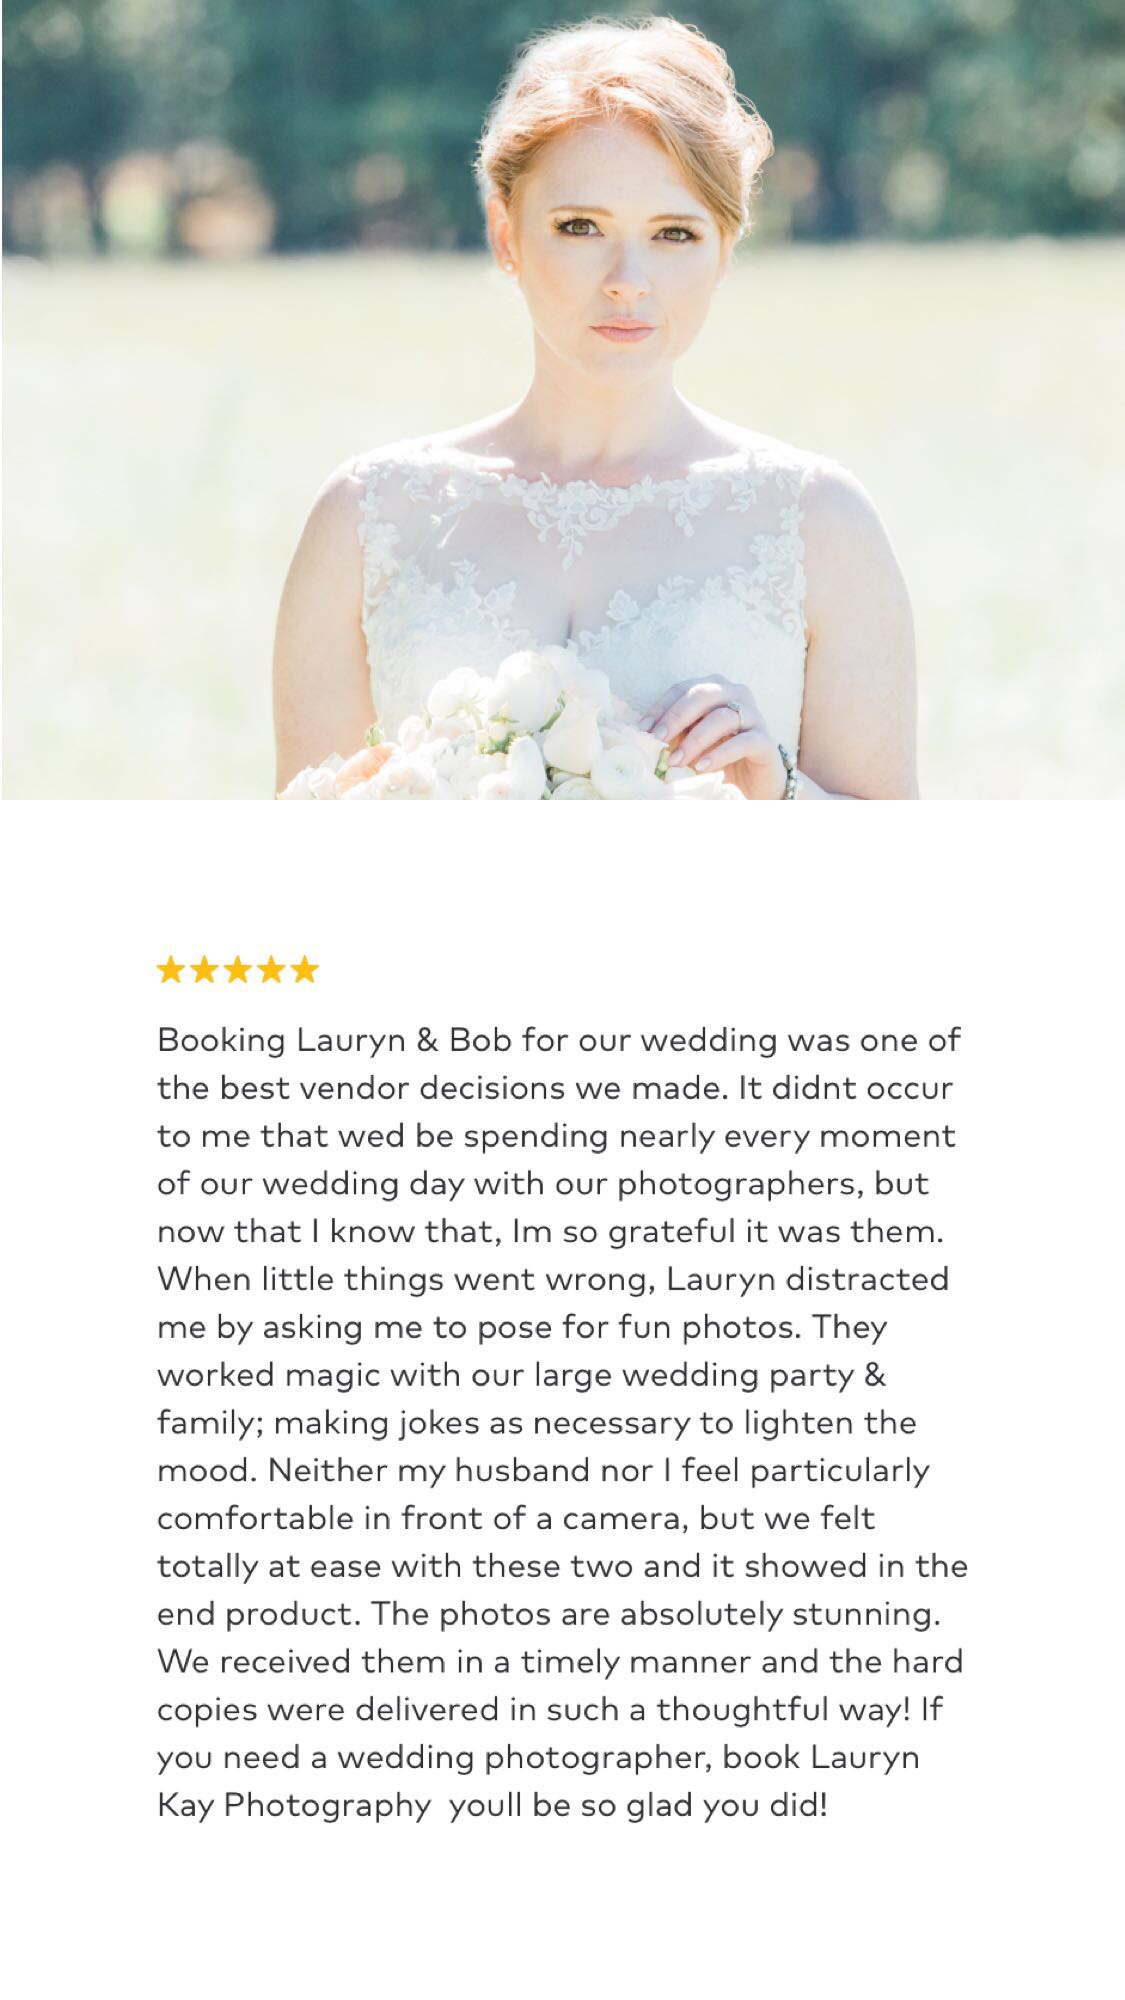 LaurynKayPhotography-Review (4)